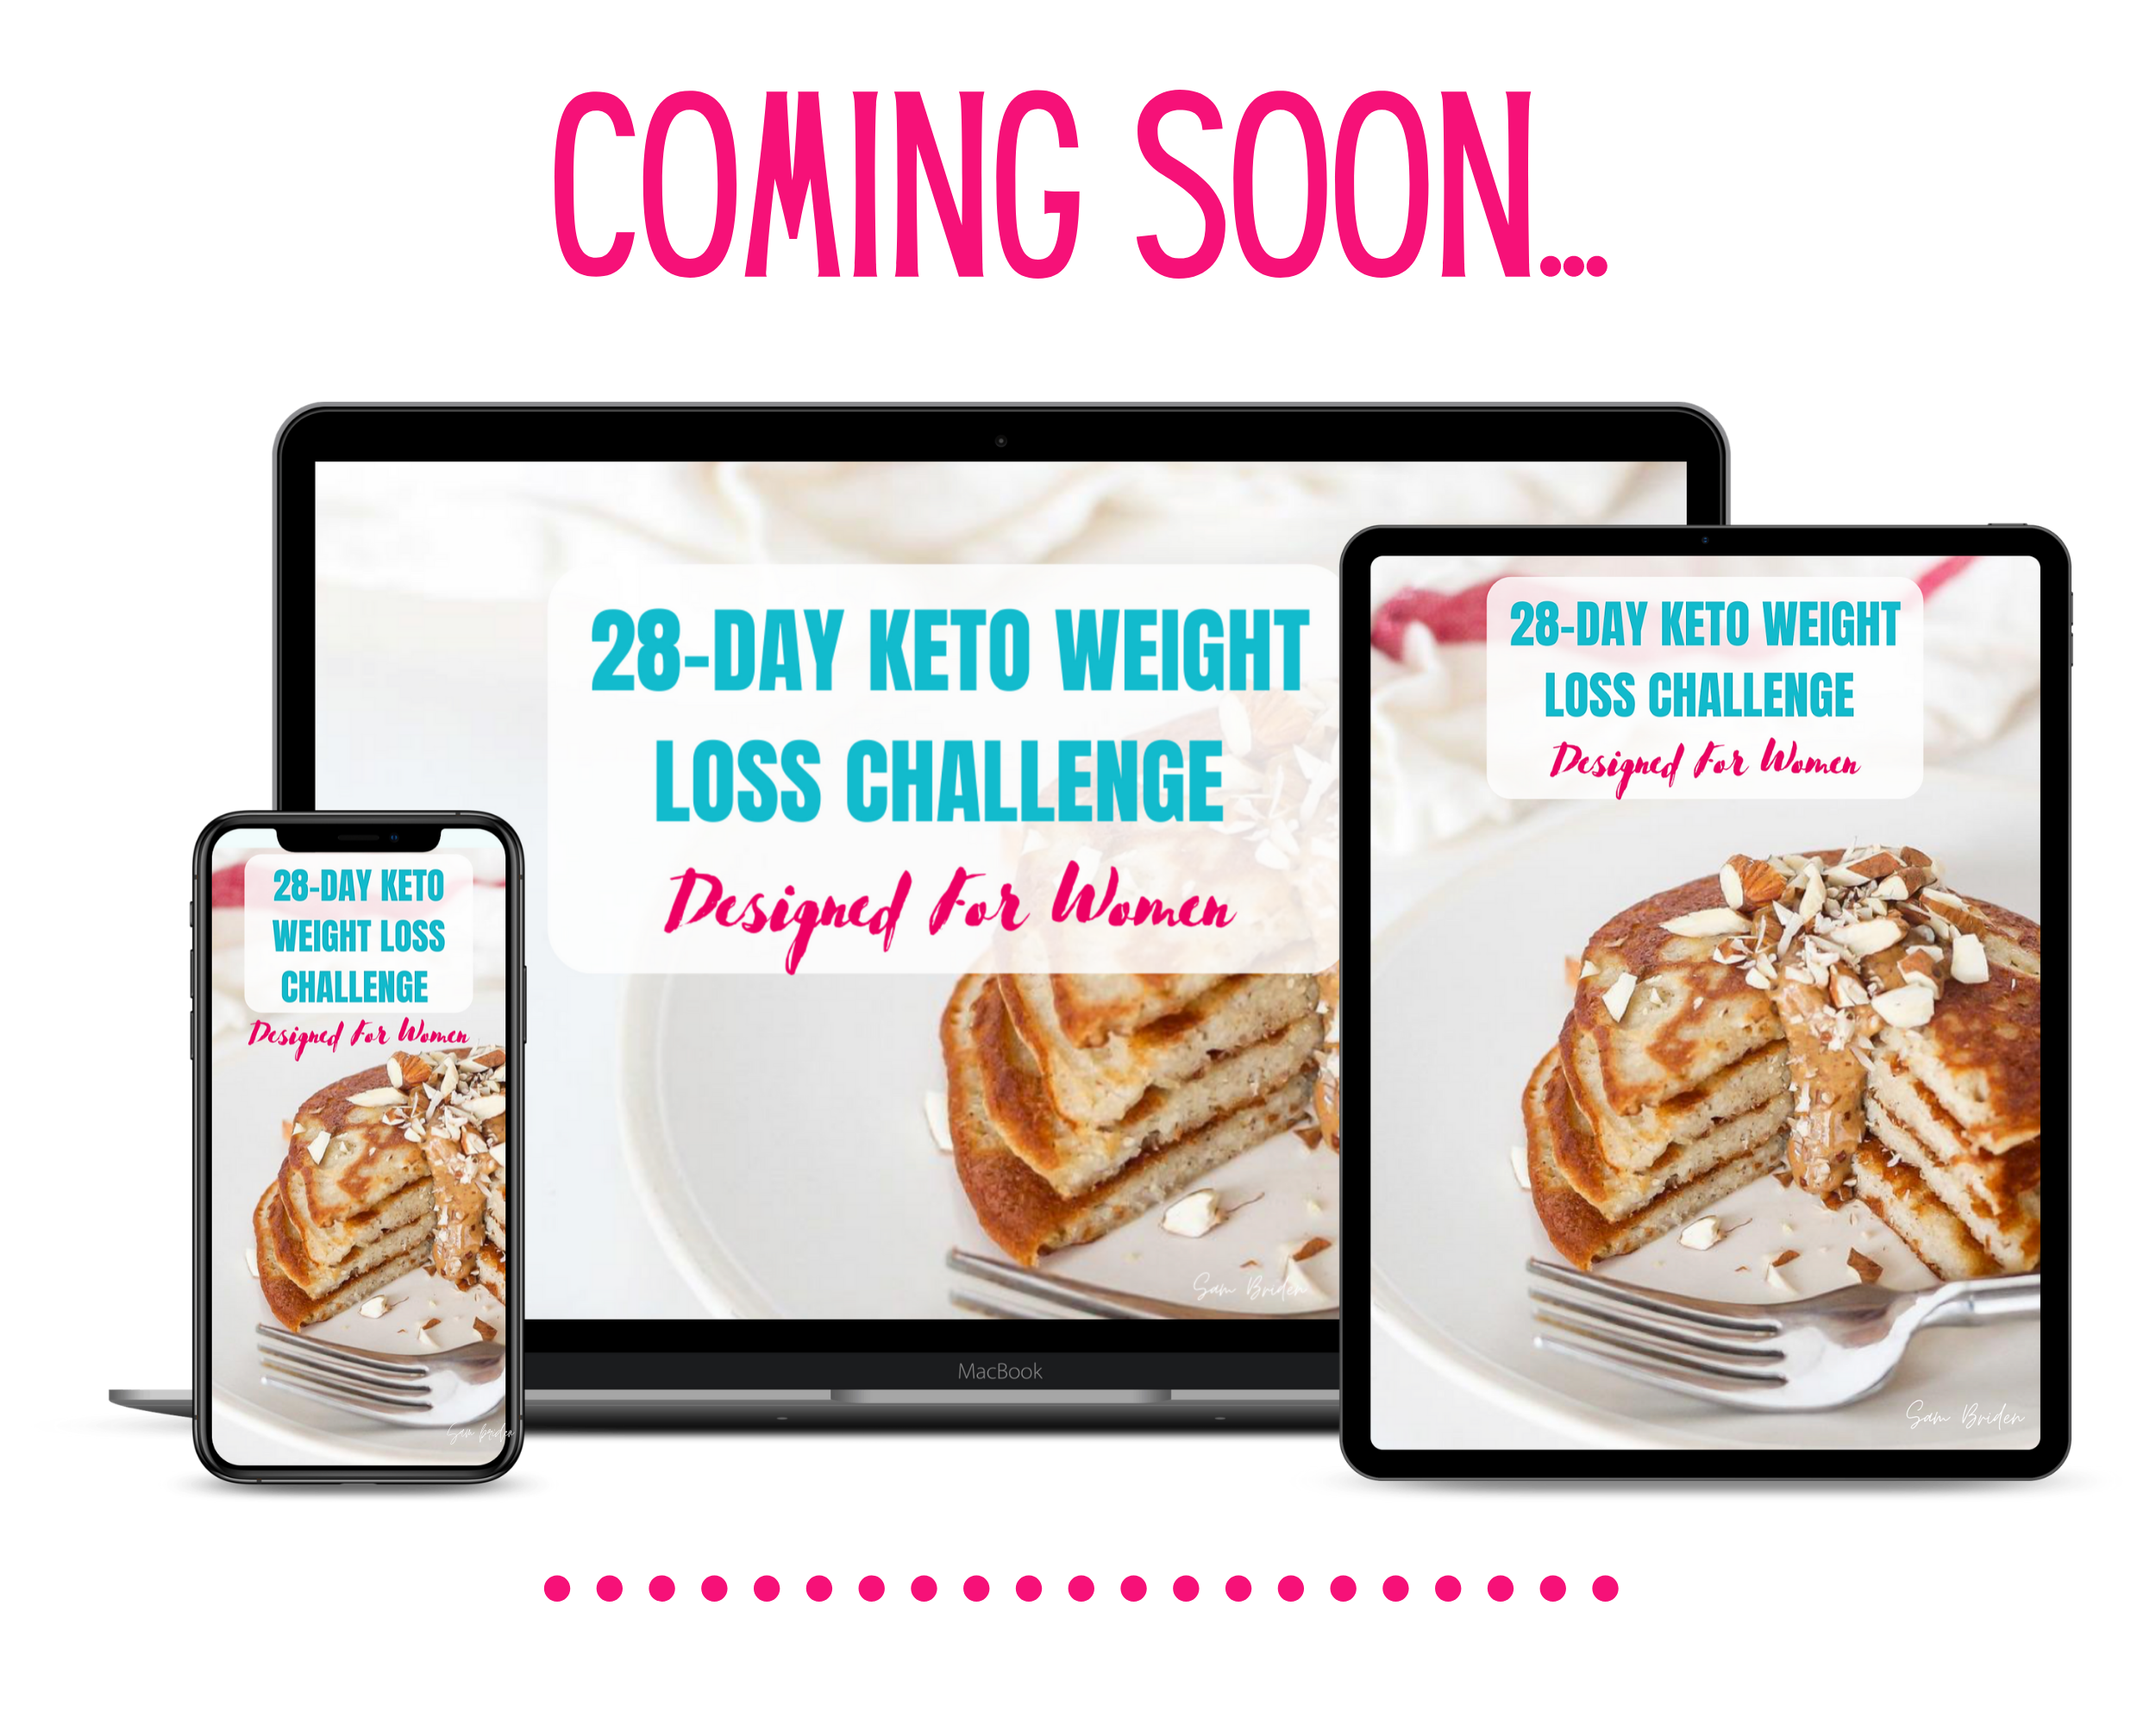 keto weight loss challenge for women